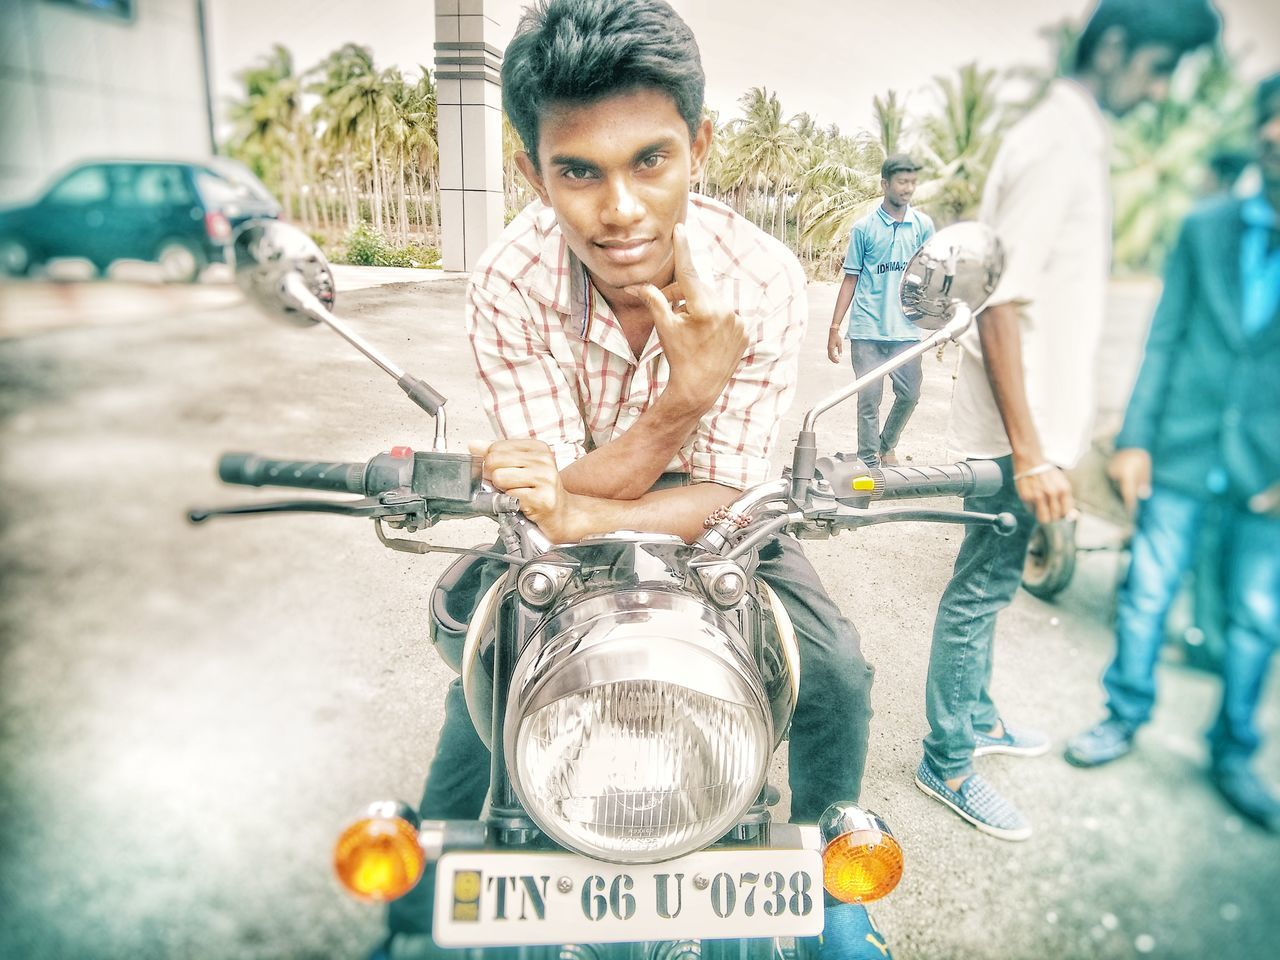 transportation, front view, motorcycle, street, mode of transport, one person, casual clothing, bicycle, mid adult, outdoors, looking at camera, portrait, road, men, day, mature adult, land vehicle, real people, smiling, city, one man only, young adult, adults only, adult, biker, people, only men